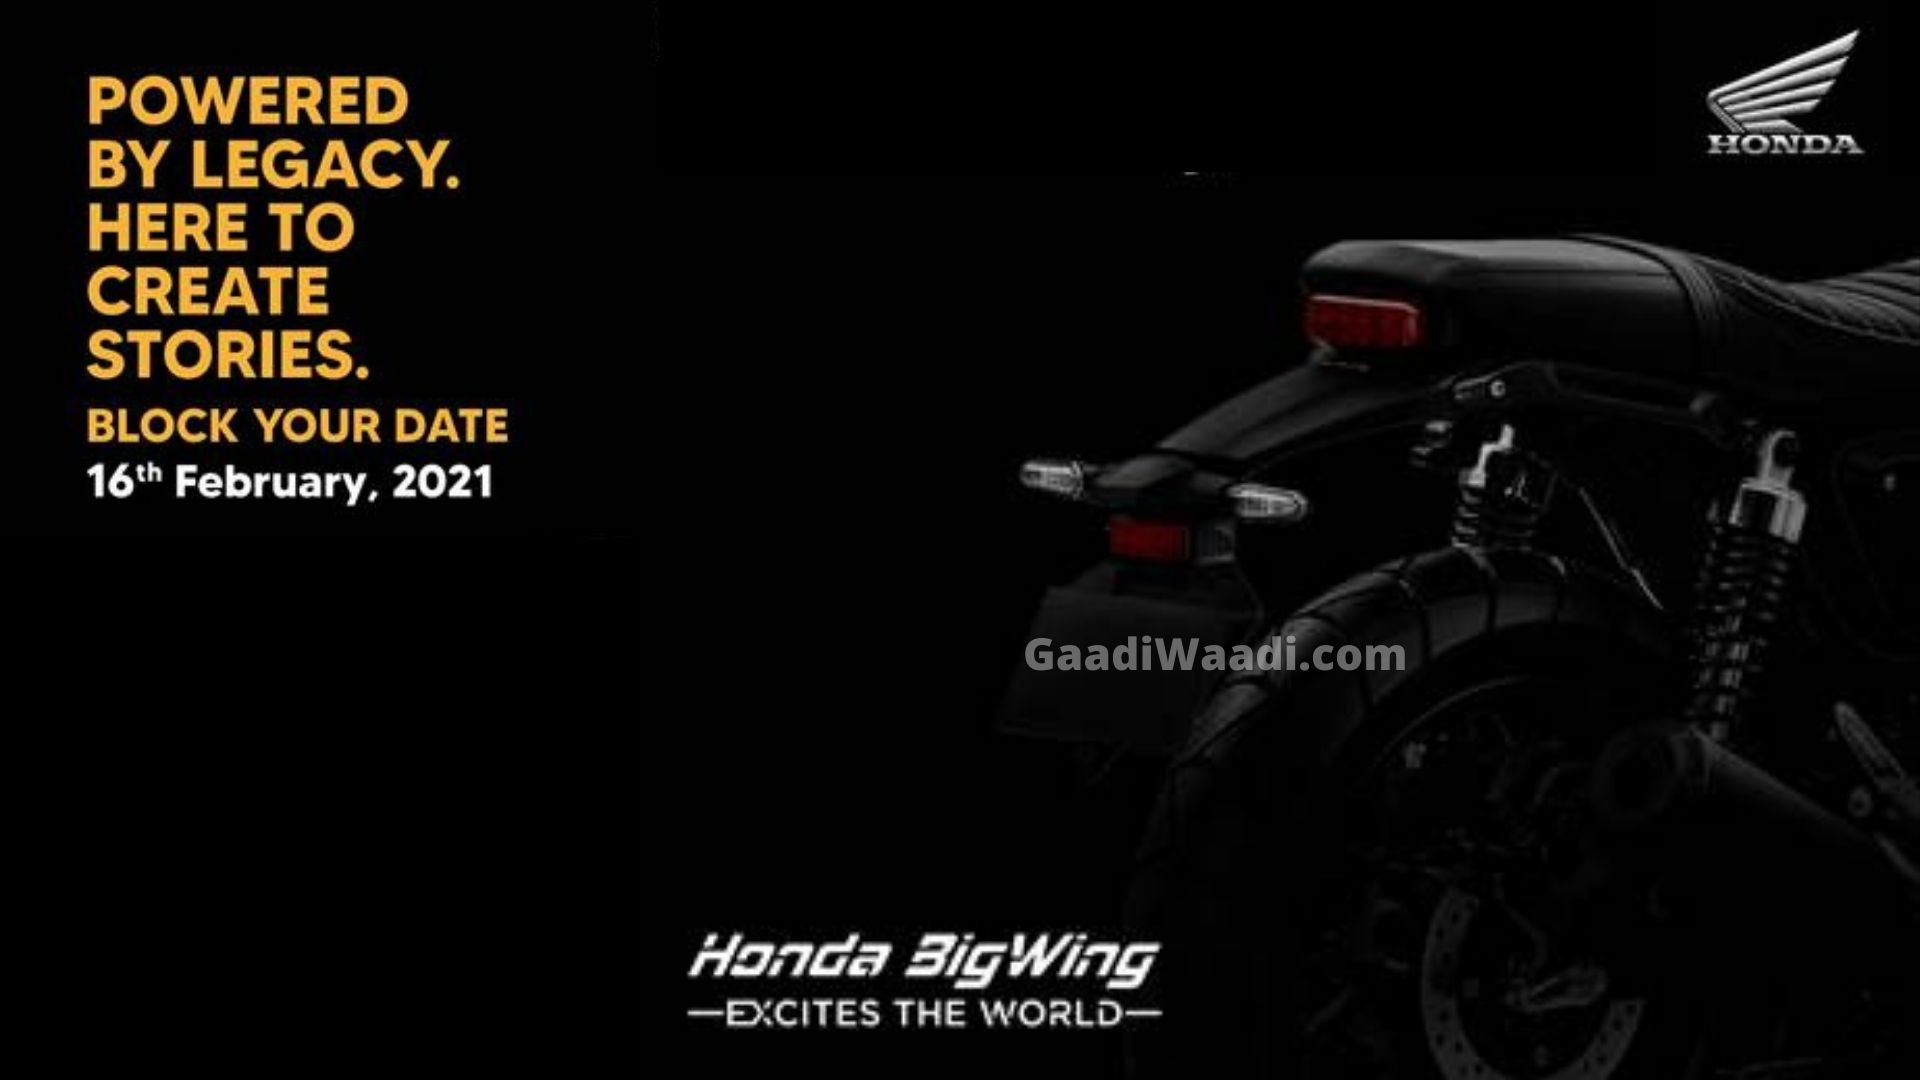 Honda CB350 Scrambler/Cafe Racer Coming Soon- What To Expect? - GaadiWaadi.com